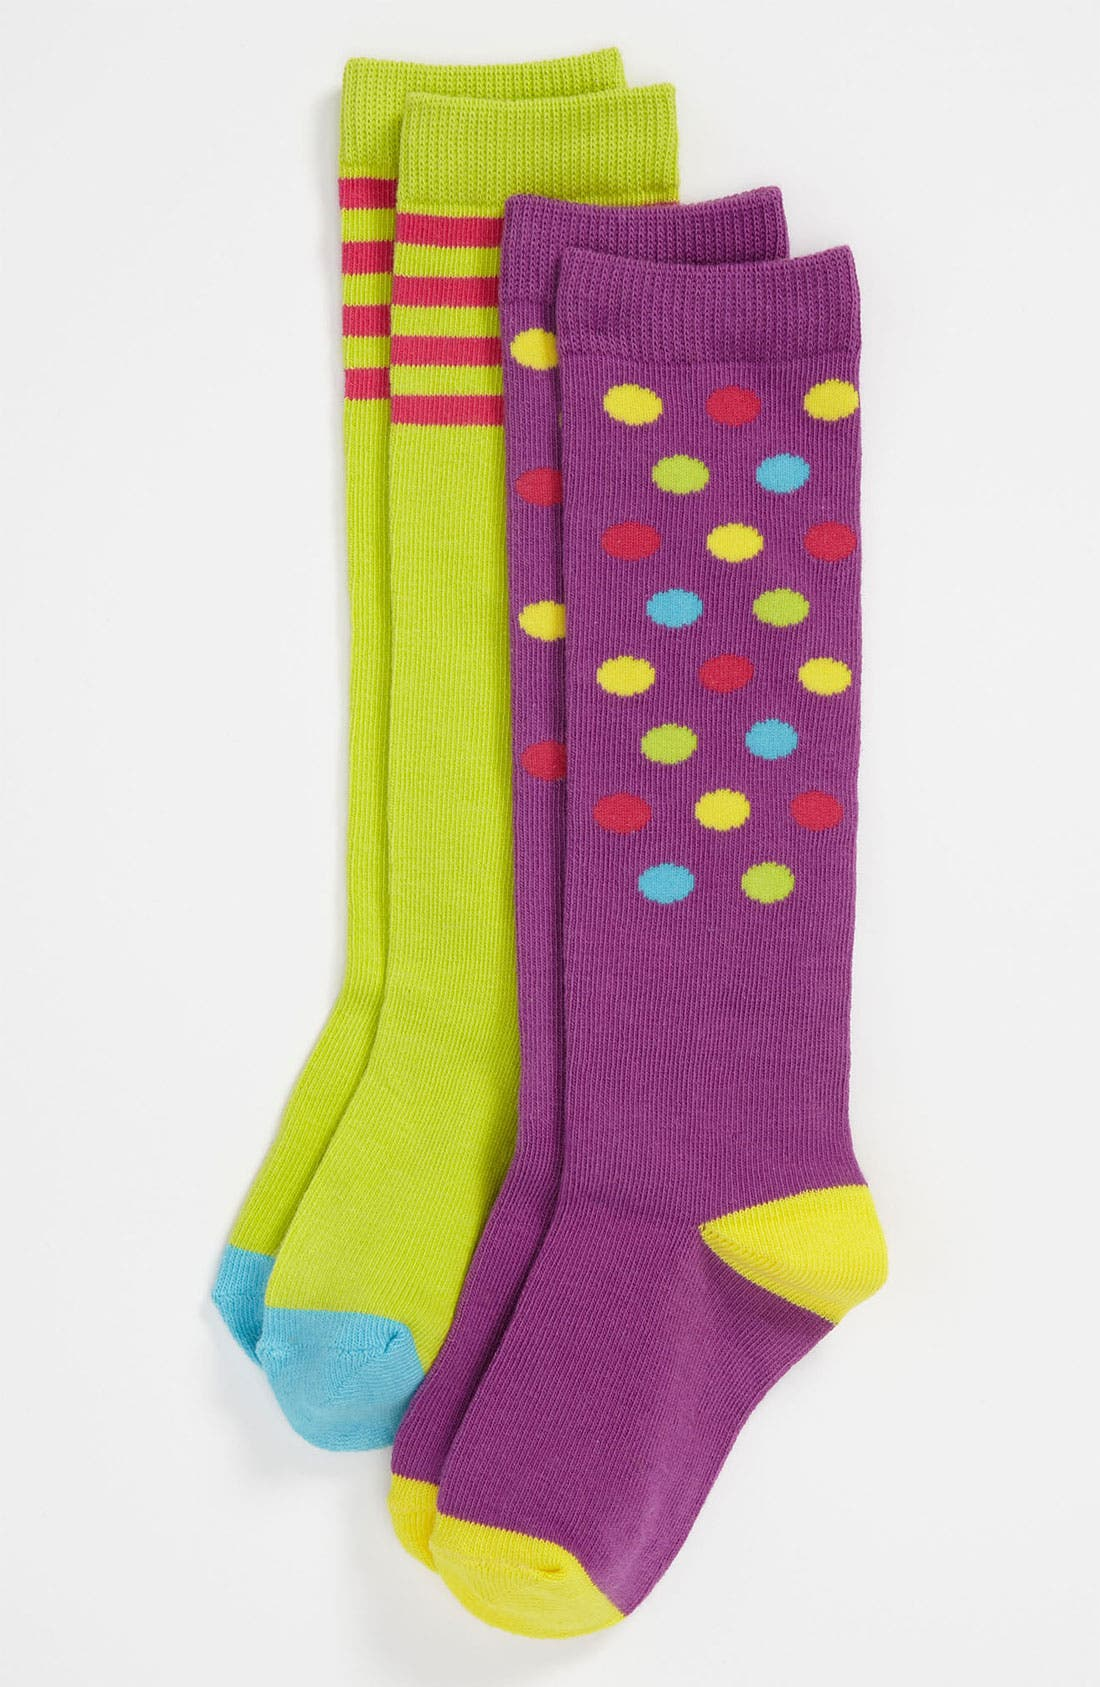 Alternate Image 1 Selected - Nordstrom 'Mix & Match' Knee Socks (2-Pack) (Girls)